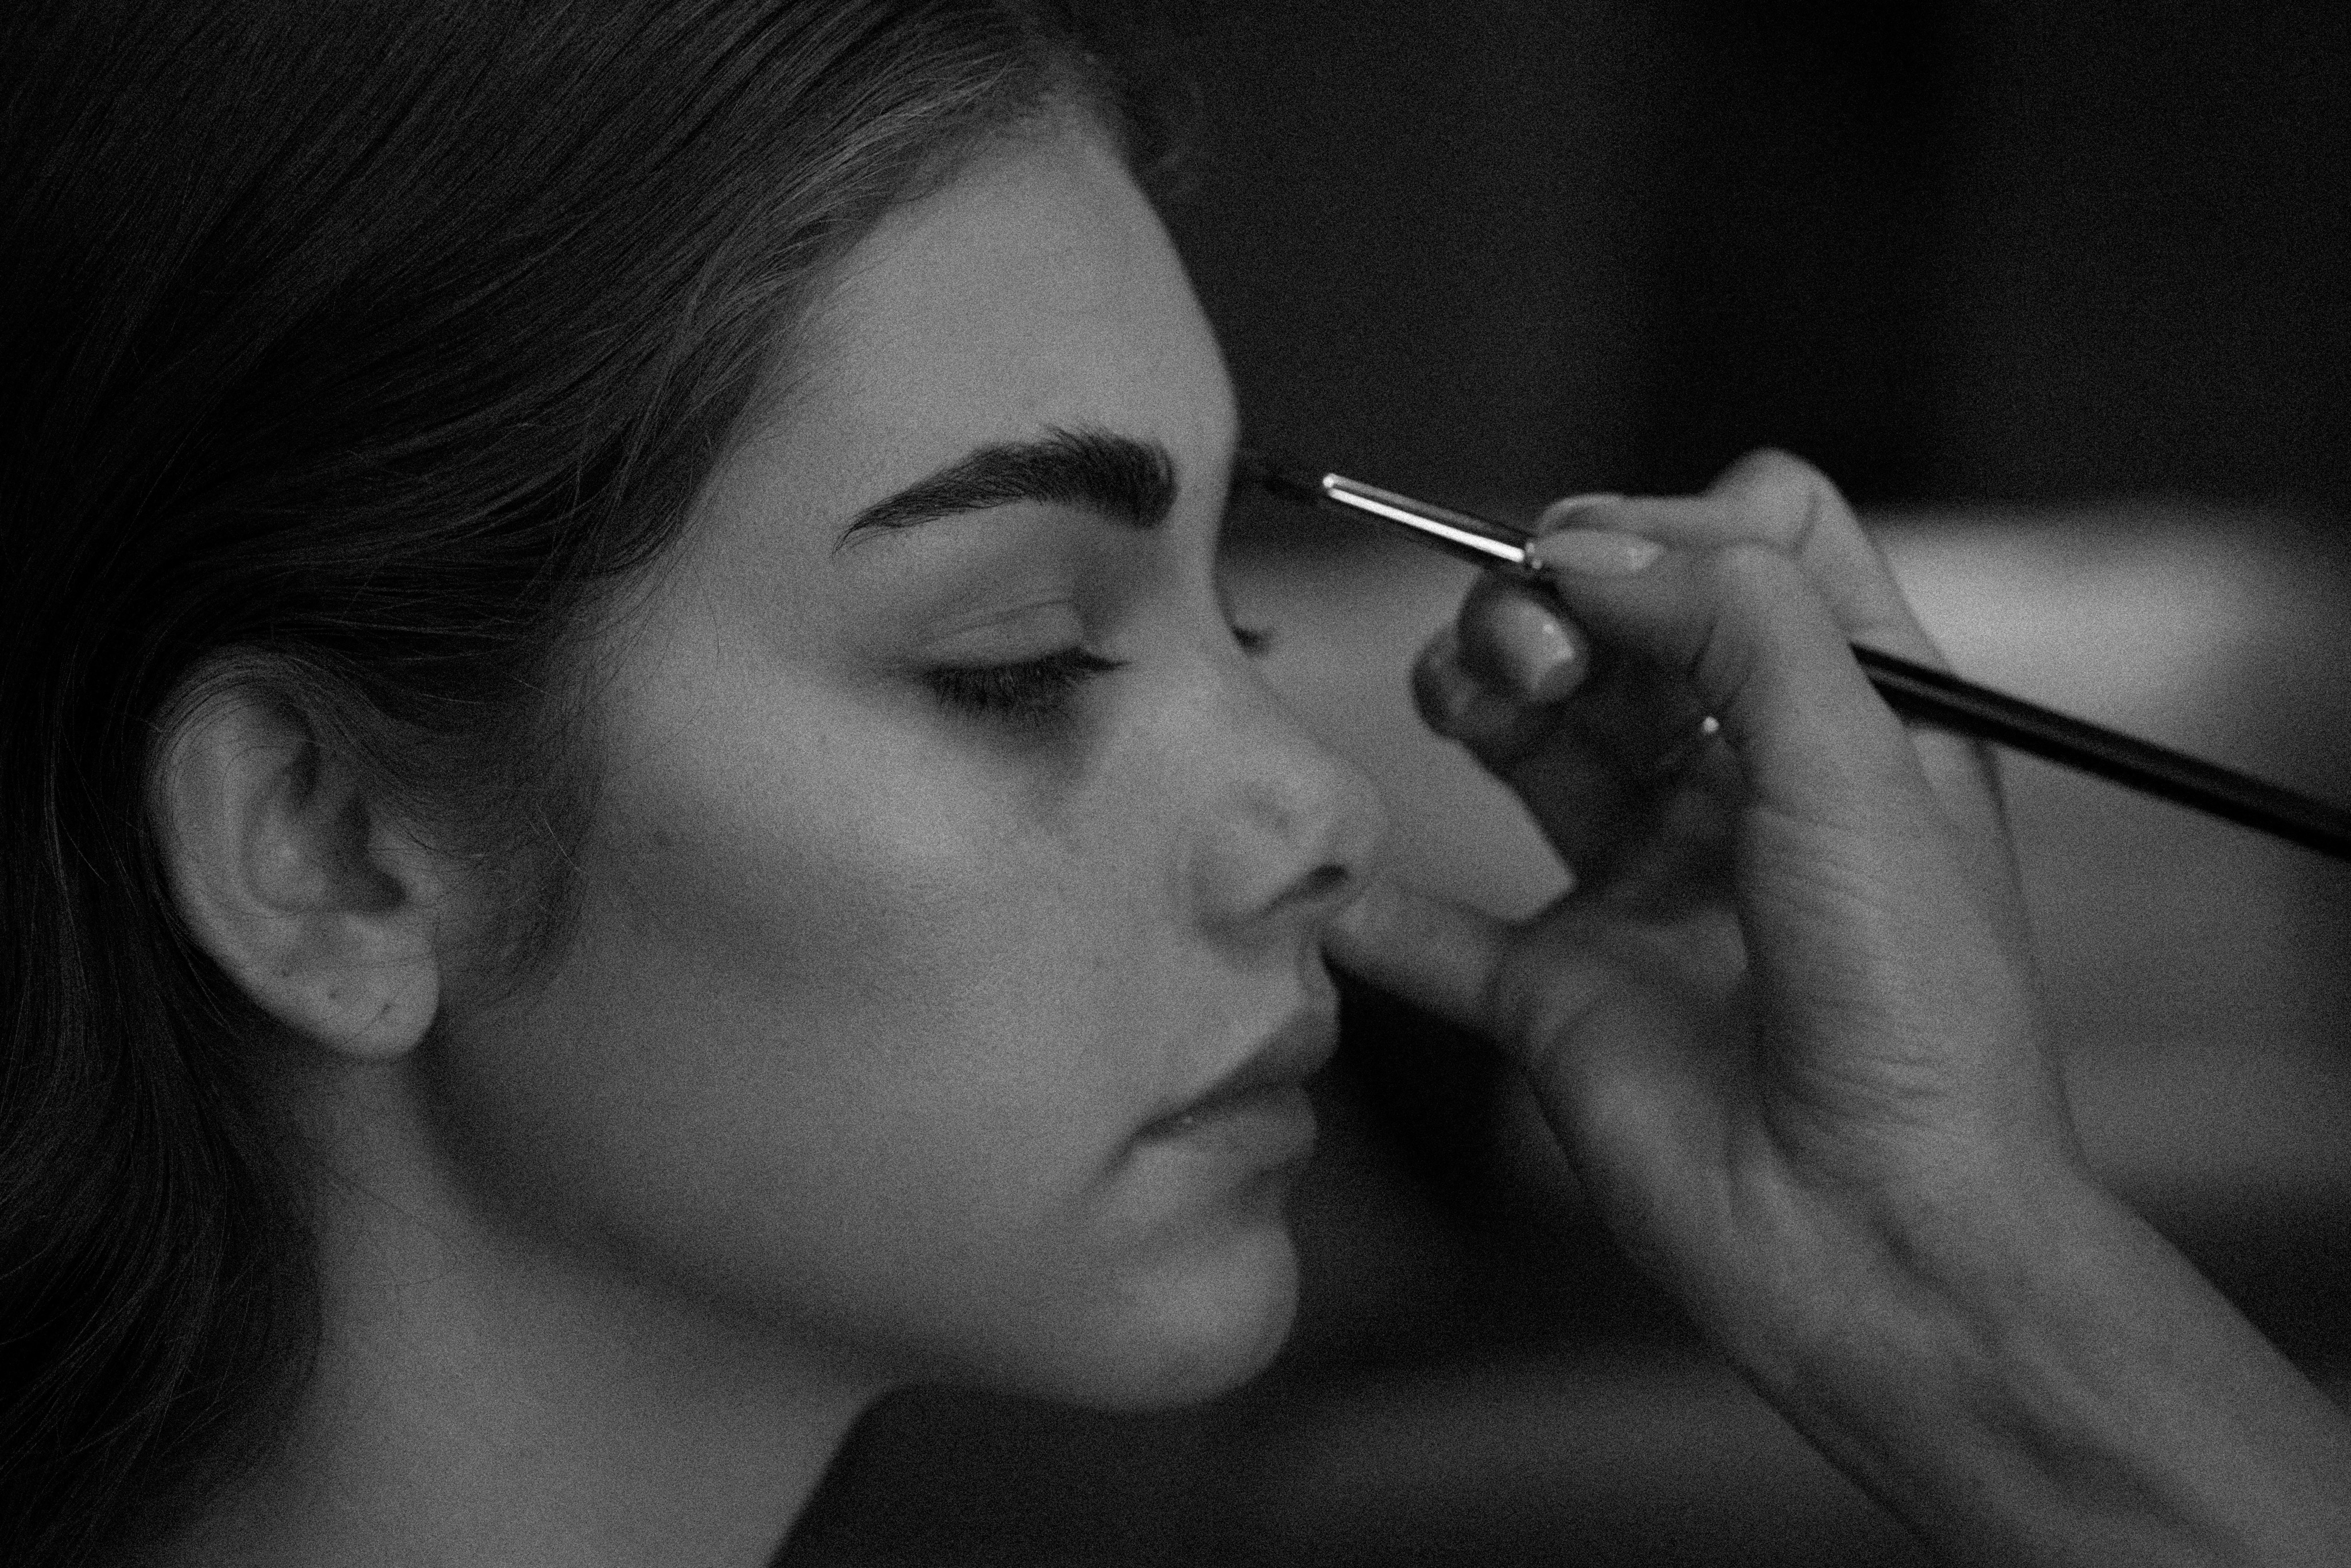 Cara applying Seint makeup on a model